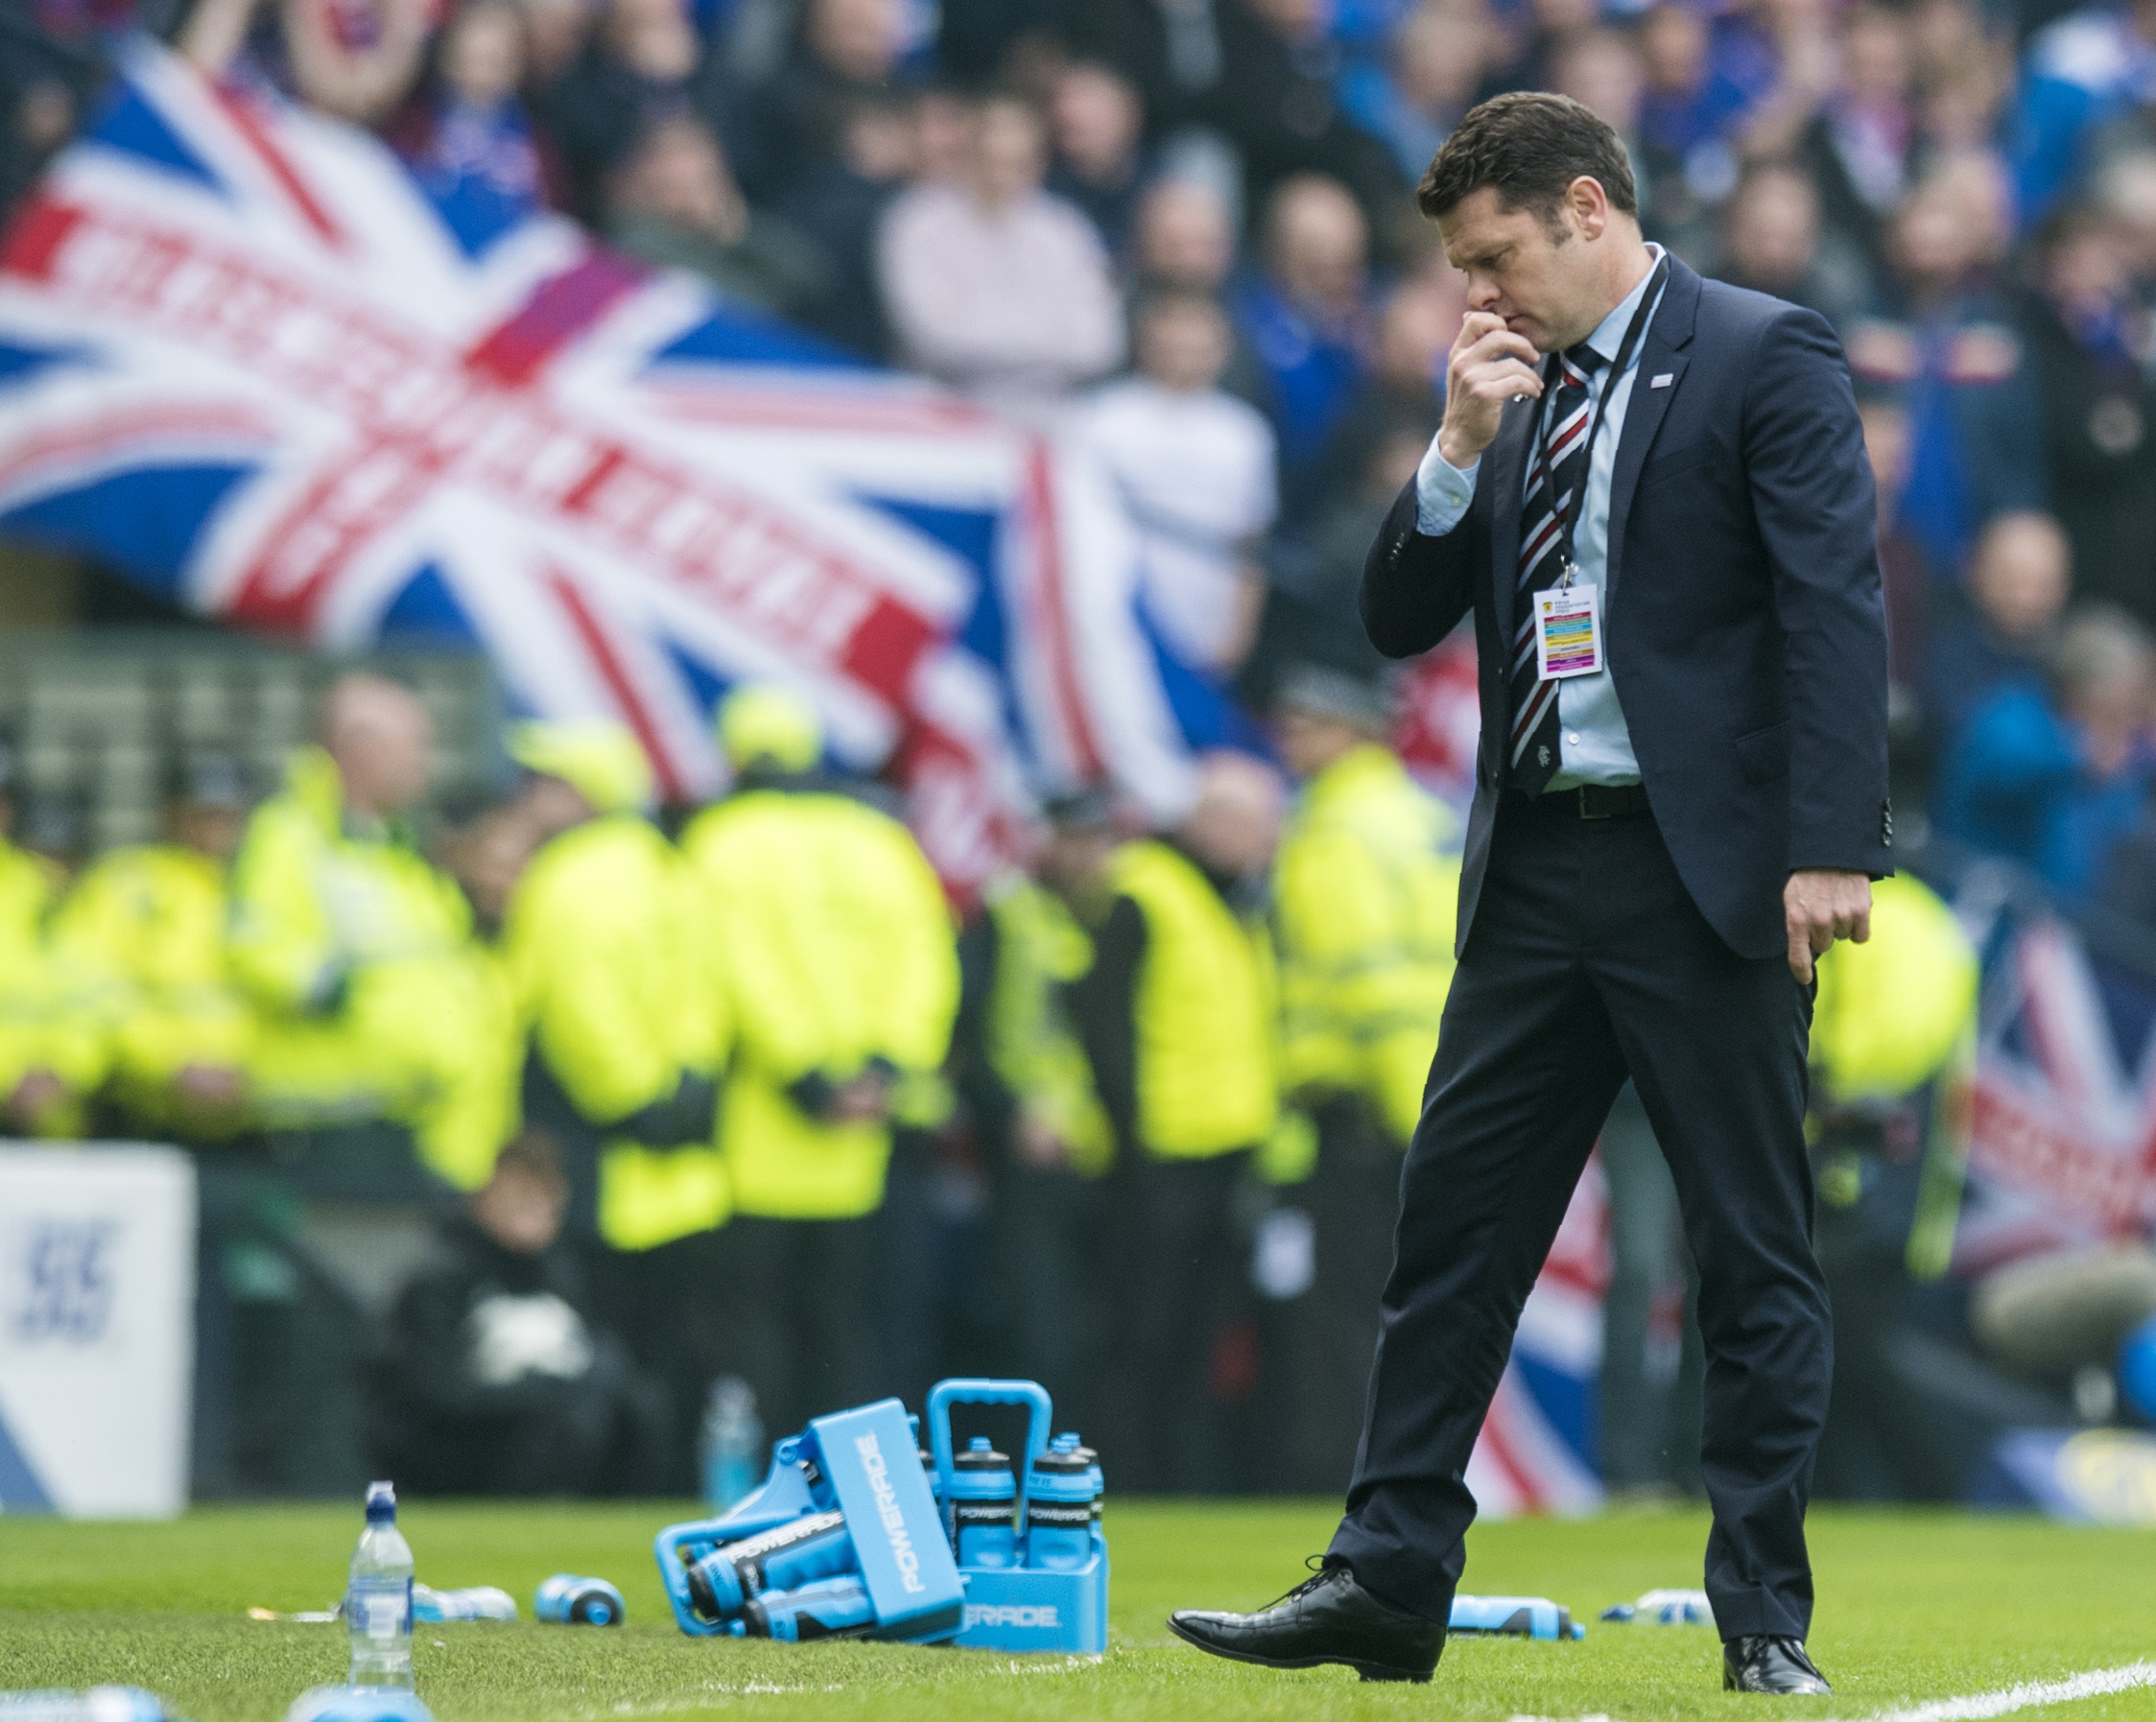 Graeme Murty was frustrated by his team's performance against Celtic but has faith Rangers can still finish second    Photograph: SNS